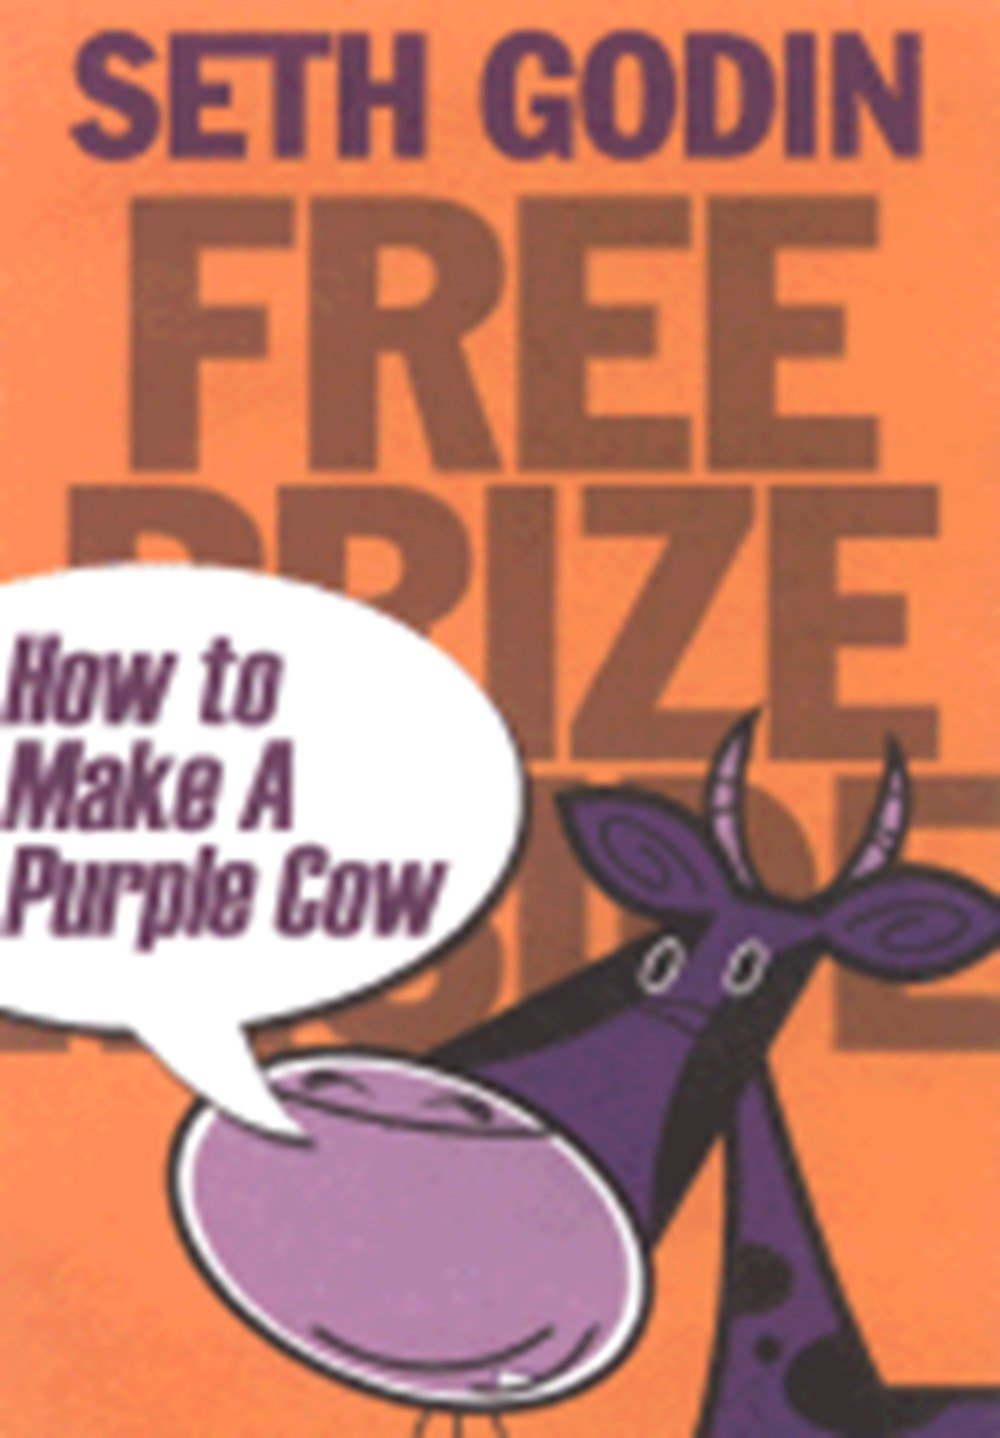 Free Prize Inside! How to Make a Purple Cow